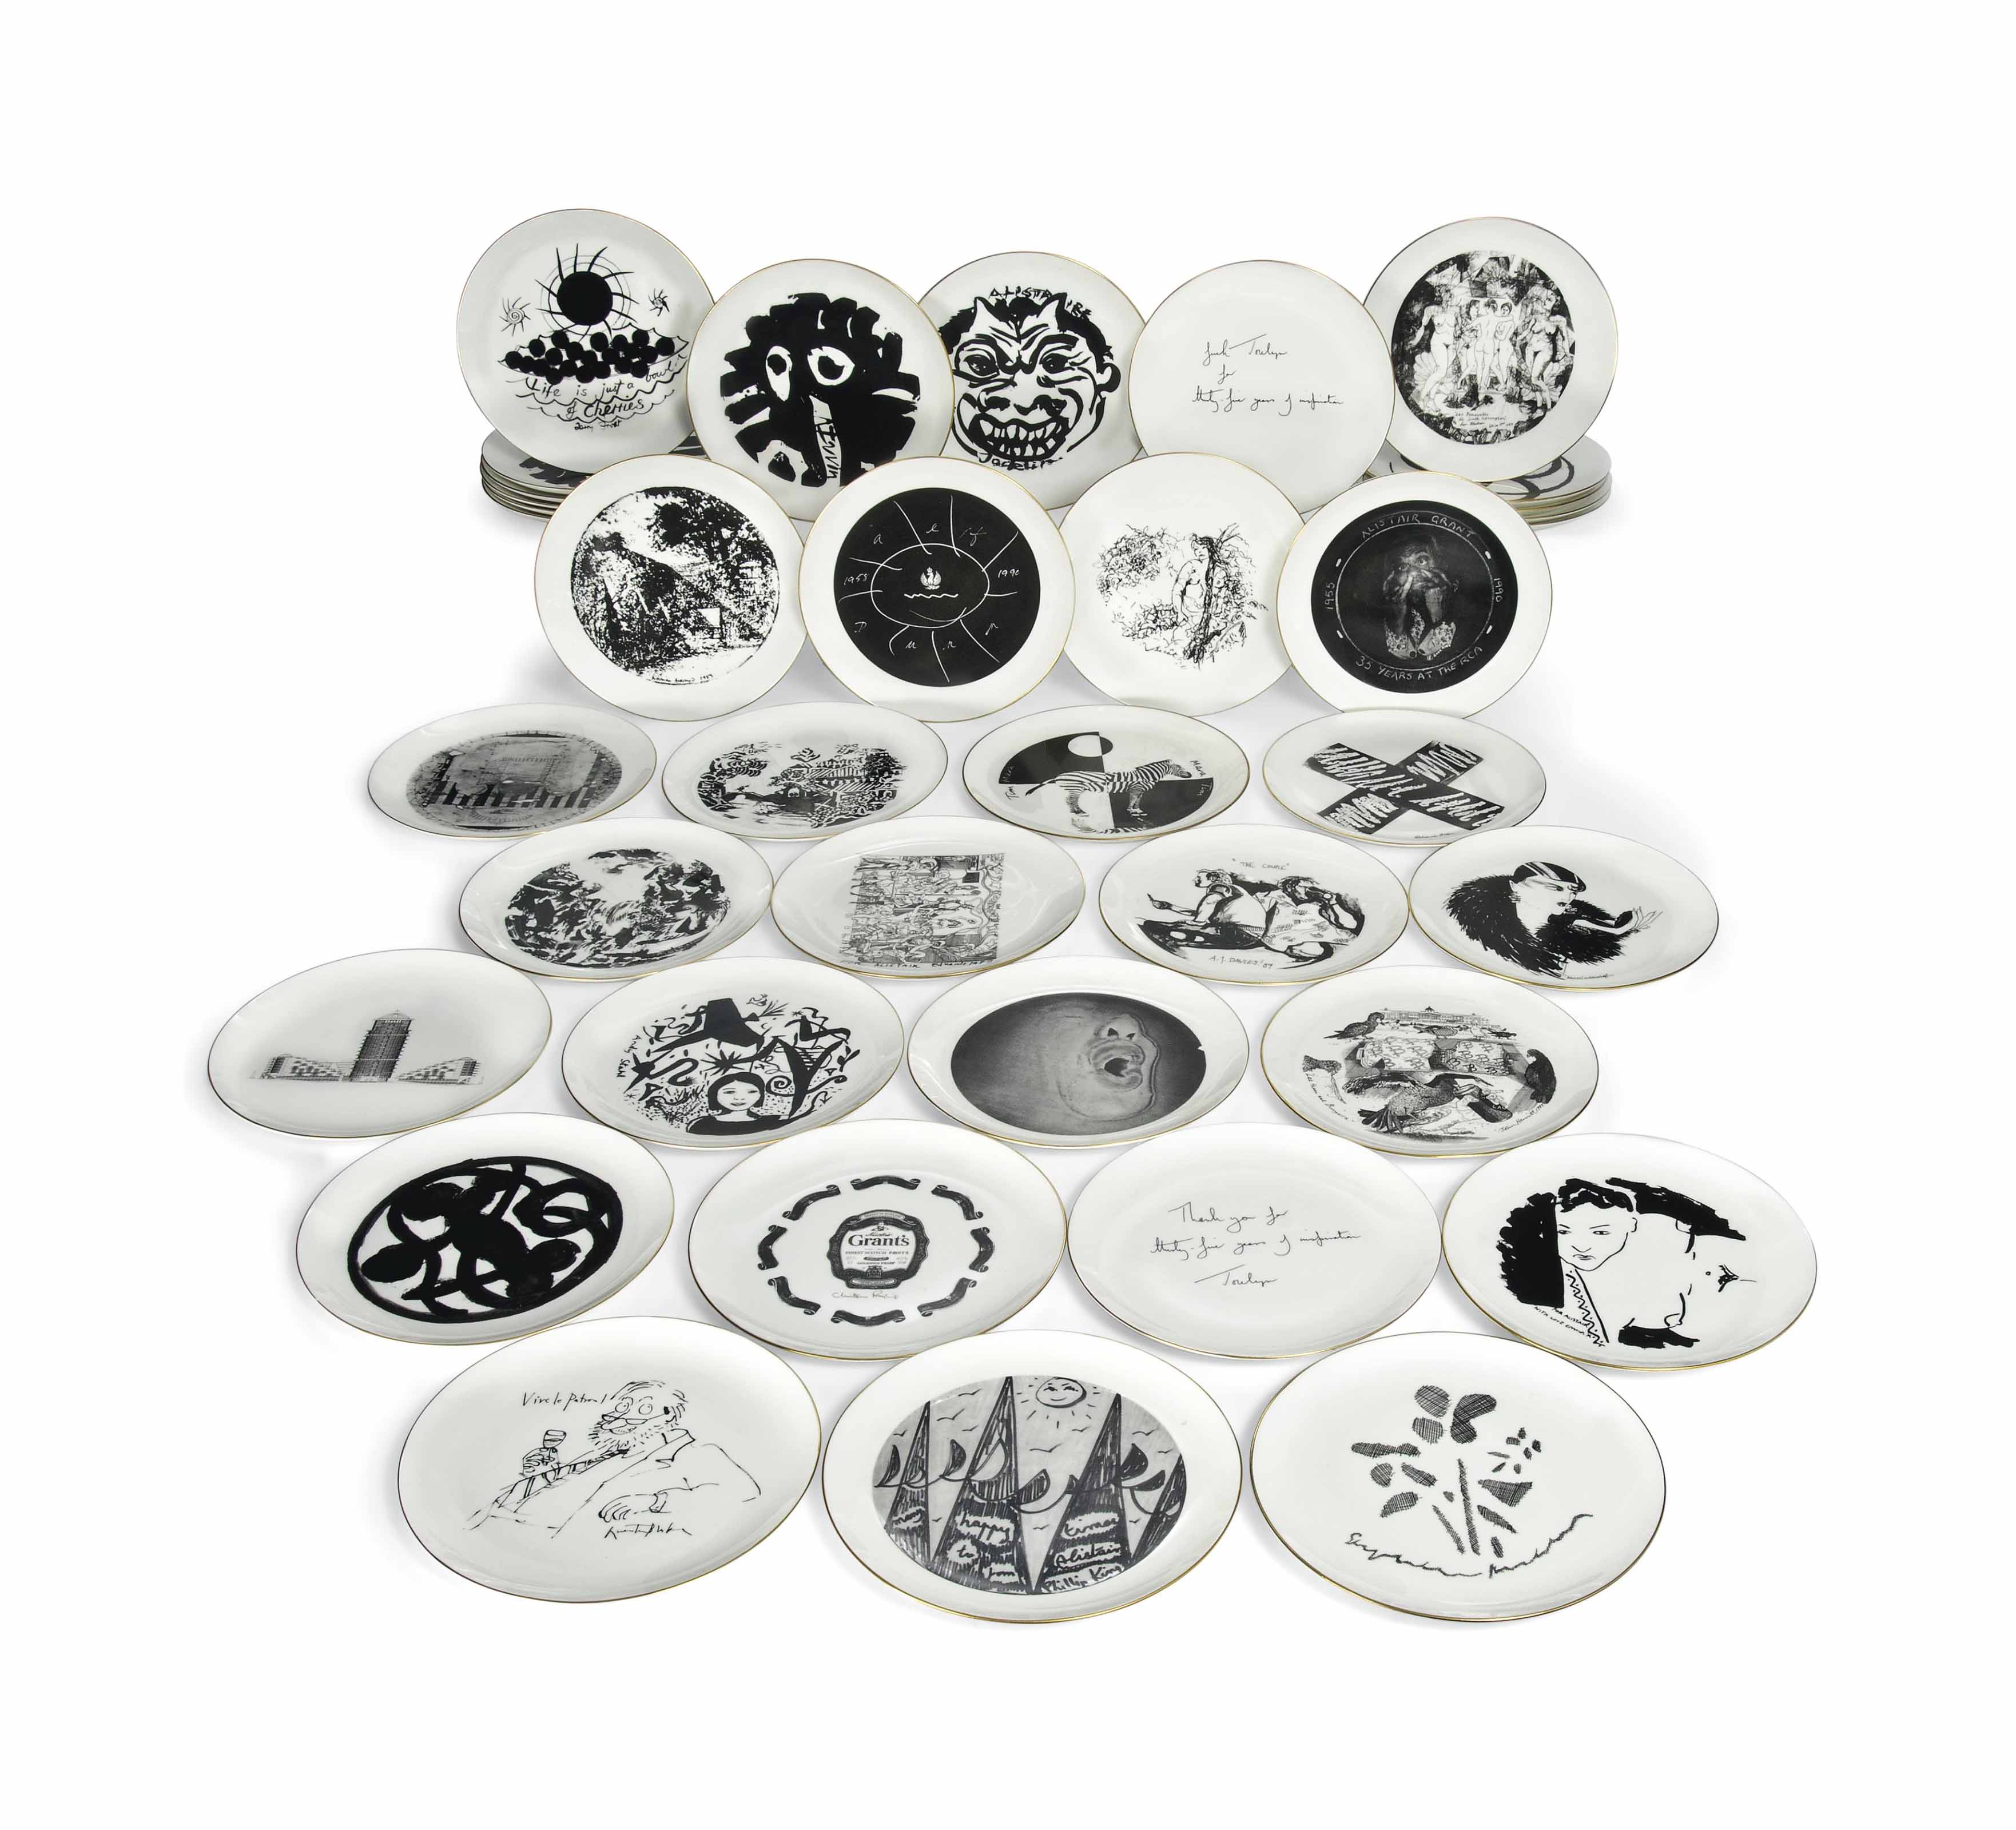 A SET OF PRINTED PLATES COMMIS